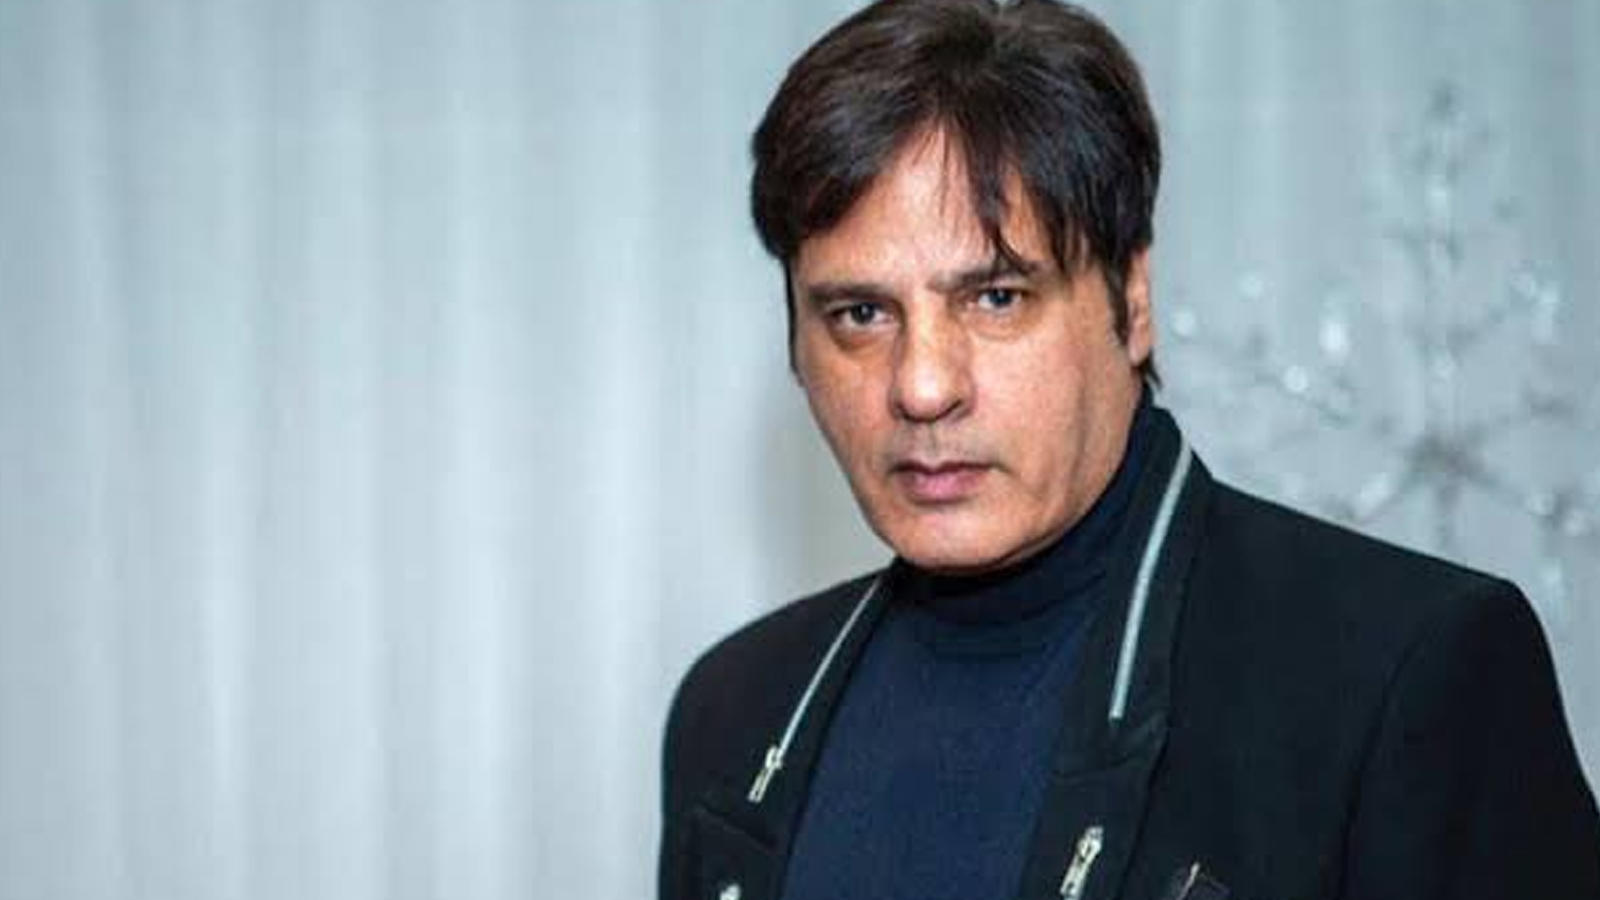 rahul-roy-health-update-post-suffering-brain-stroke-actor-now-moved-out-of-icu-say-reports